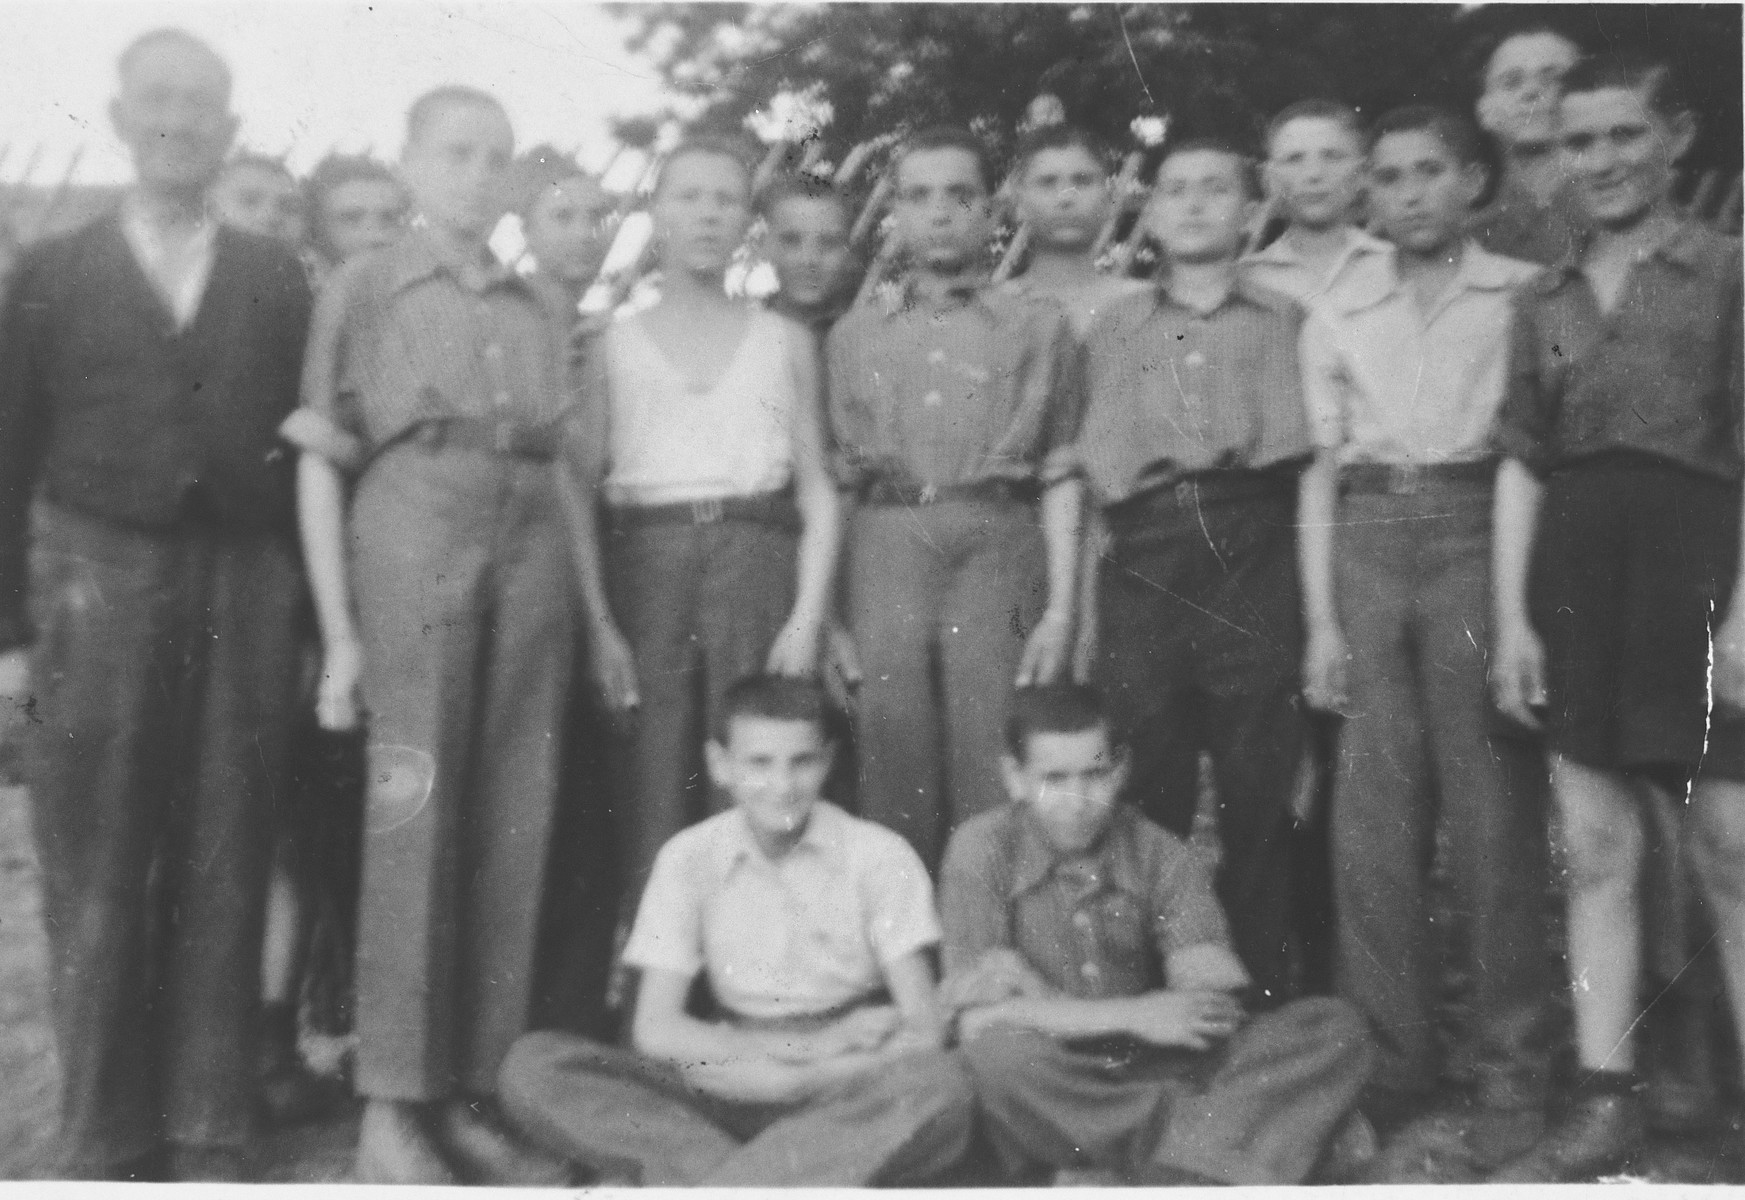 Group portrait of young teenage survivors of Buchenwald prior to their departure for children's homes in France and Switzerland.